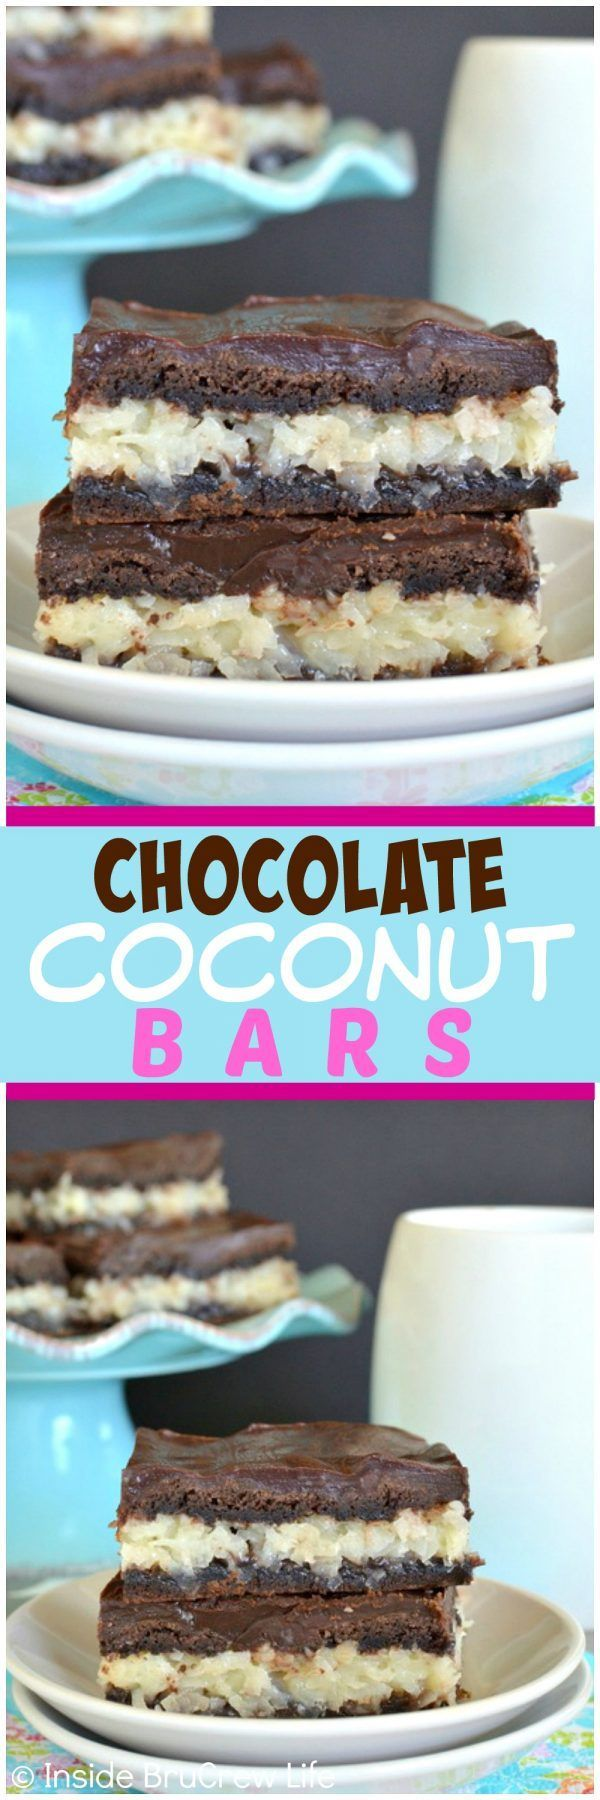 Chocolate Coconut Bars - these easy bars have a creamy coconut filling, chocolate crust, and chocolate glaze!  Easy dessert recipe for spring!